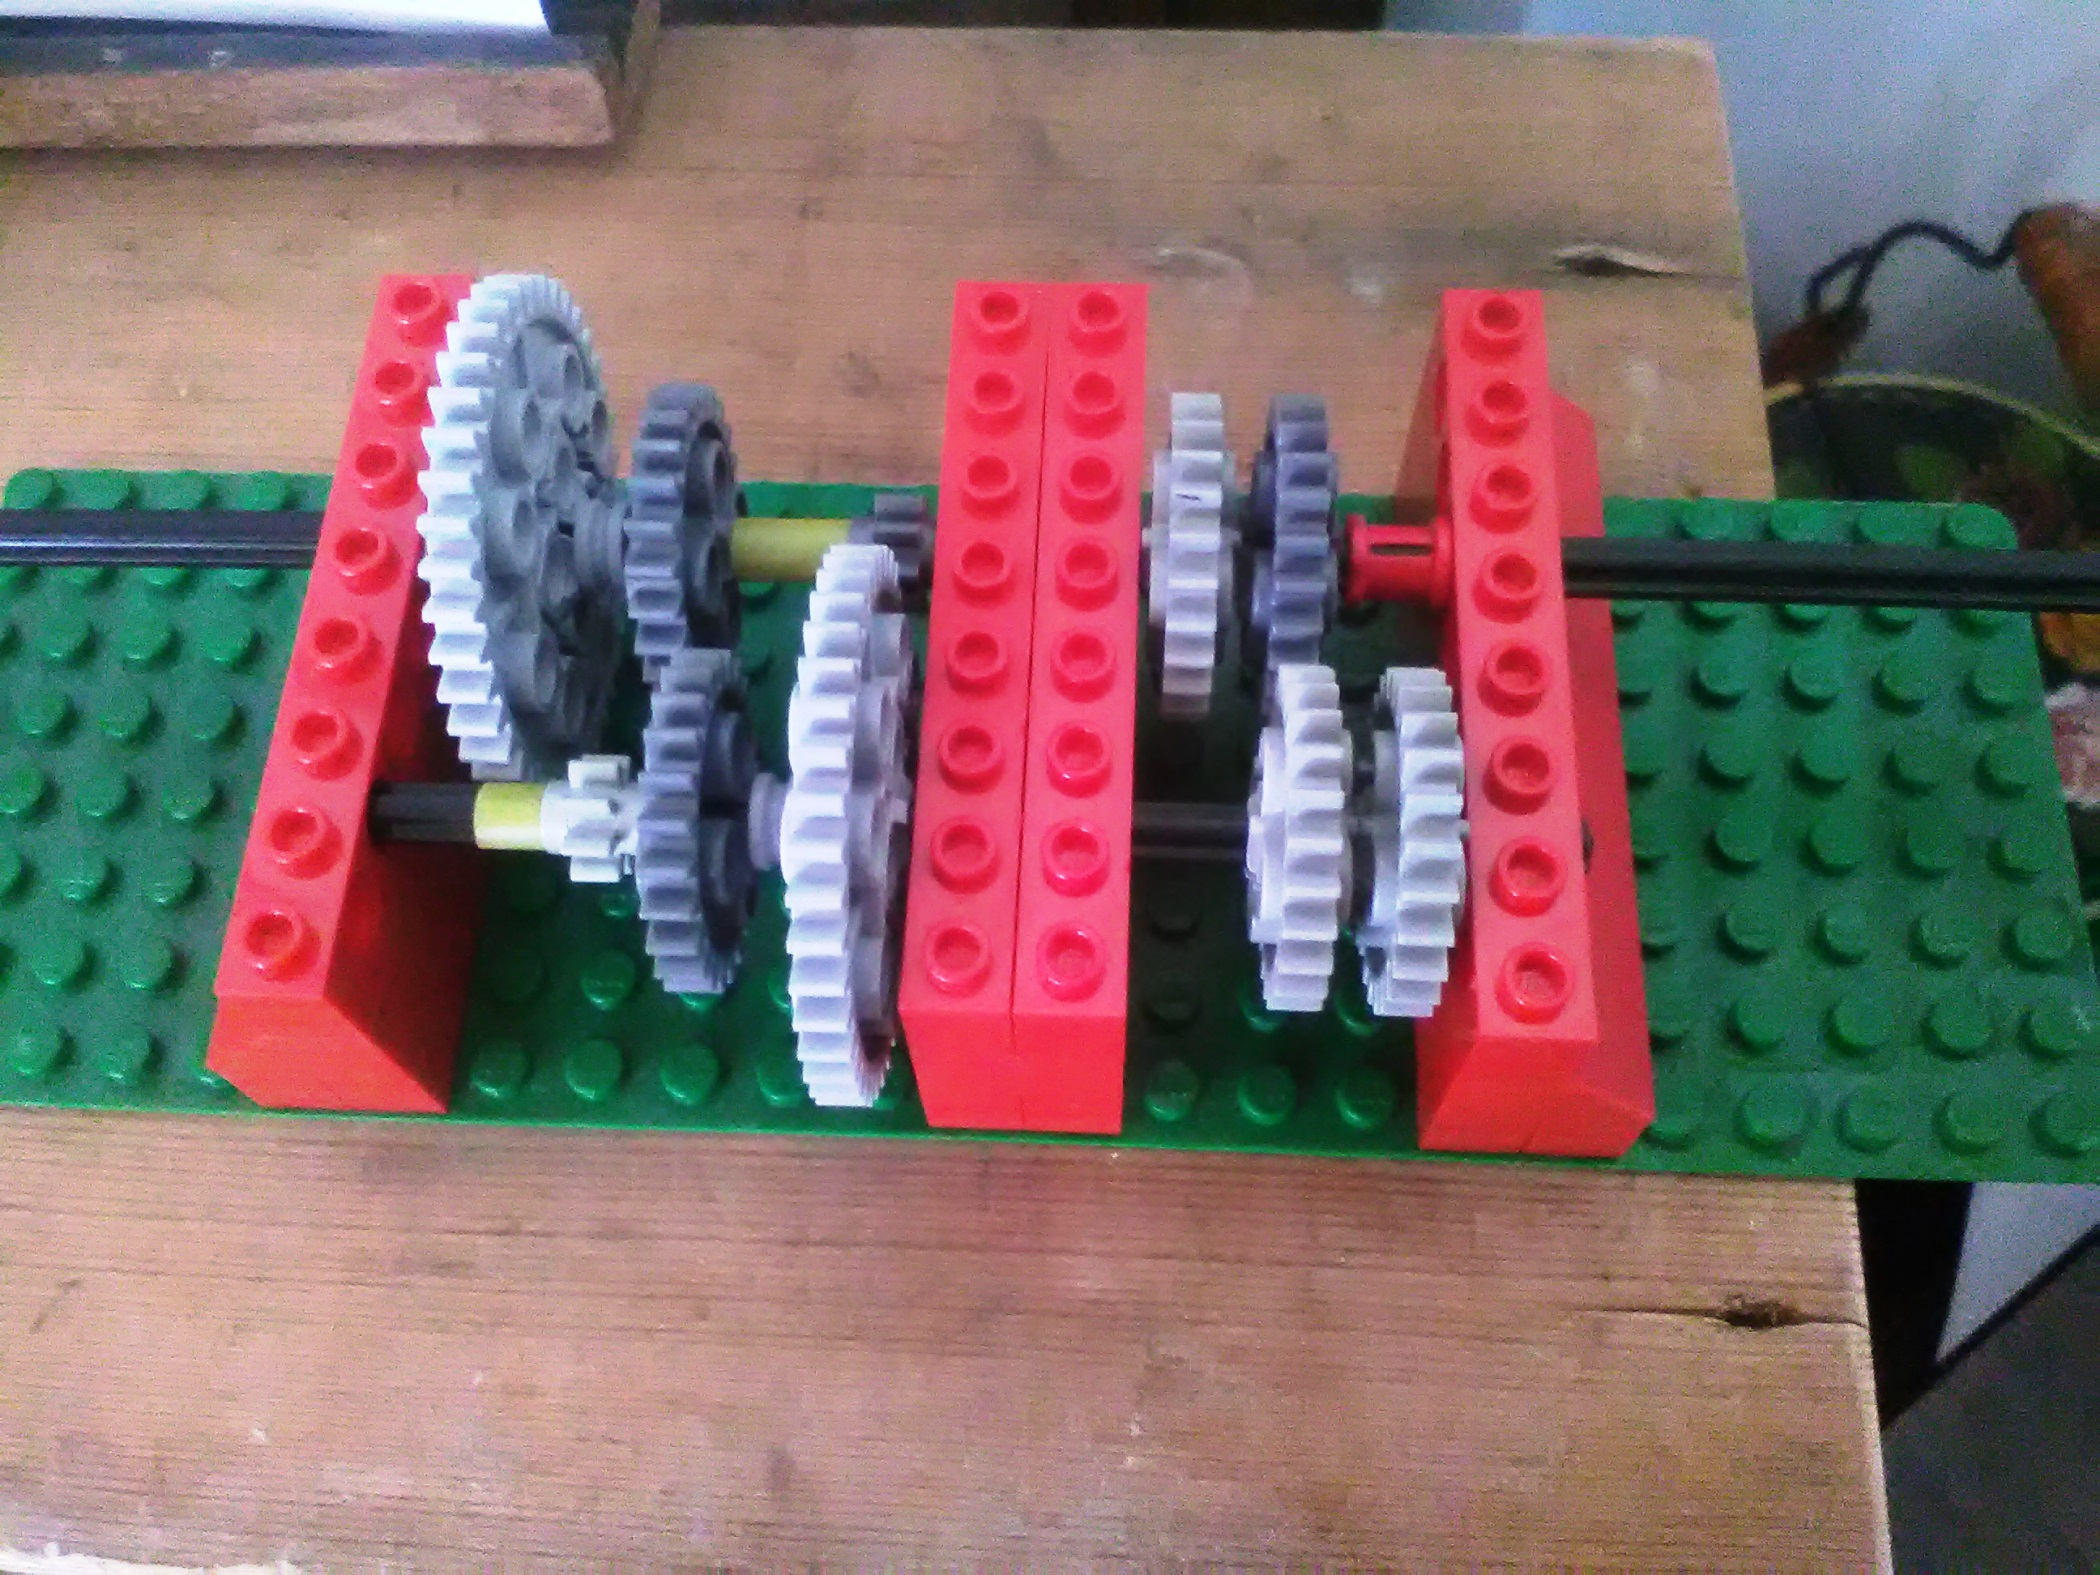 Demonstration model using Lego pieces